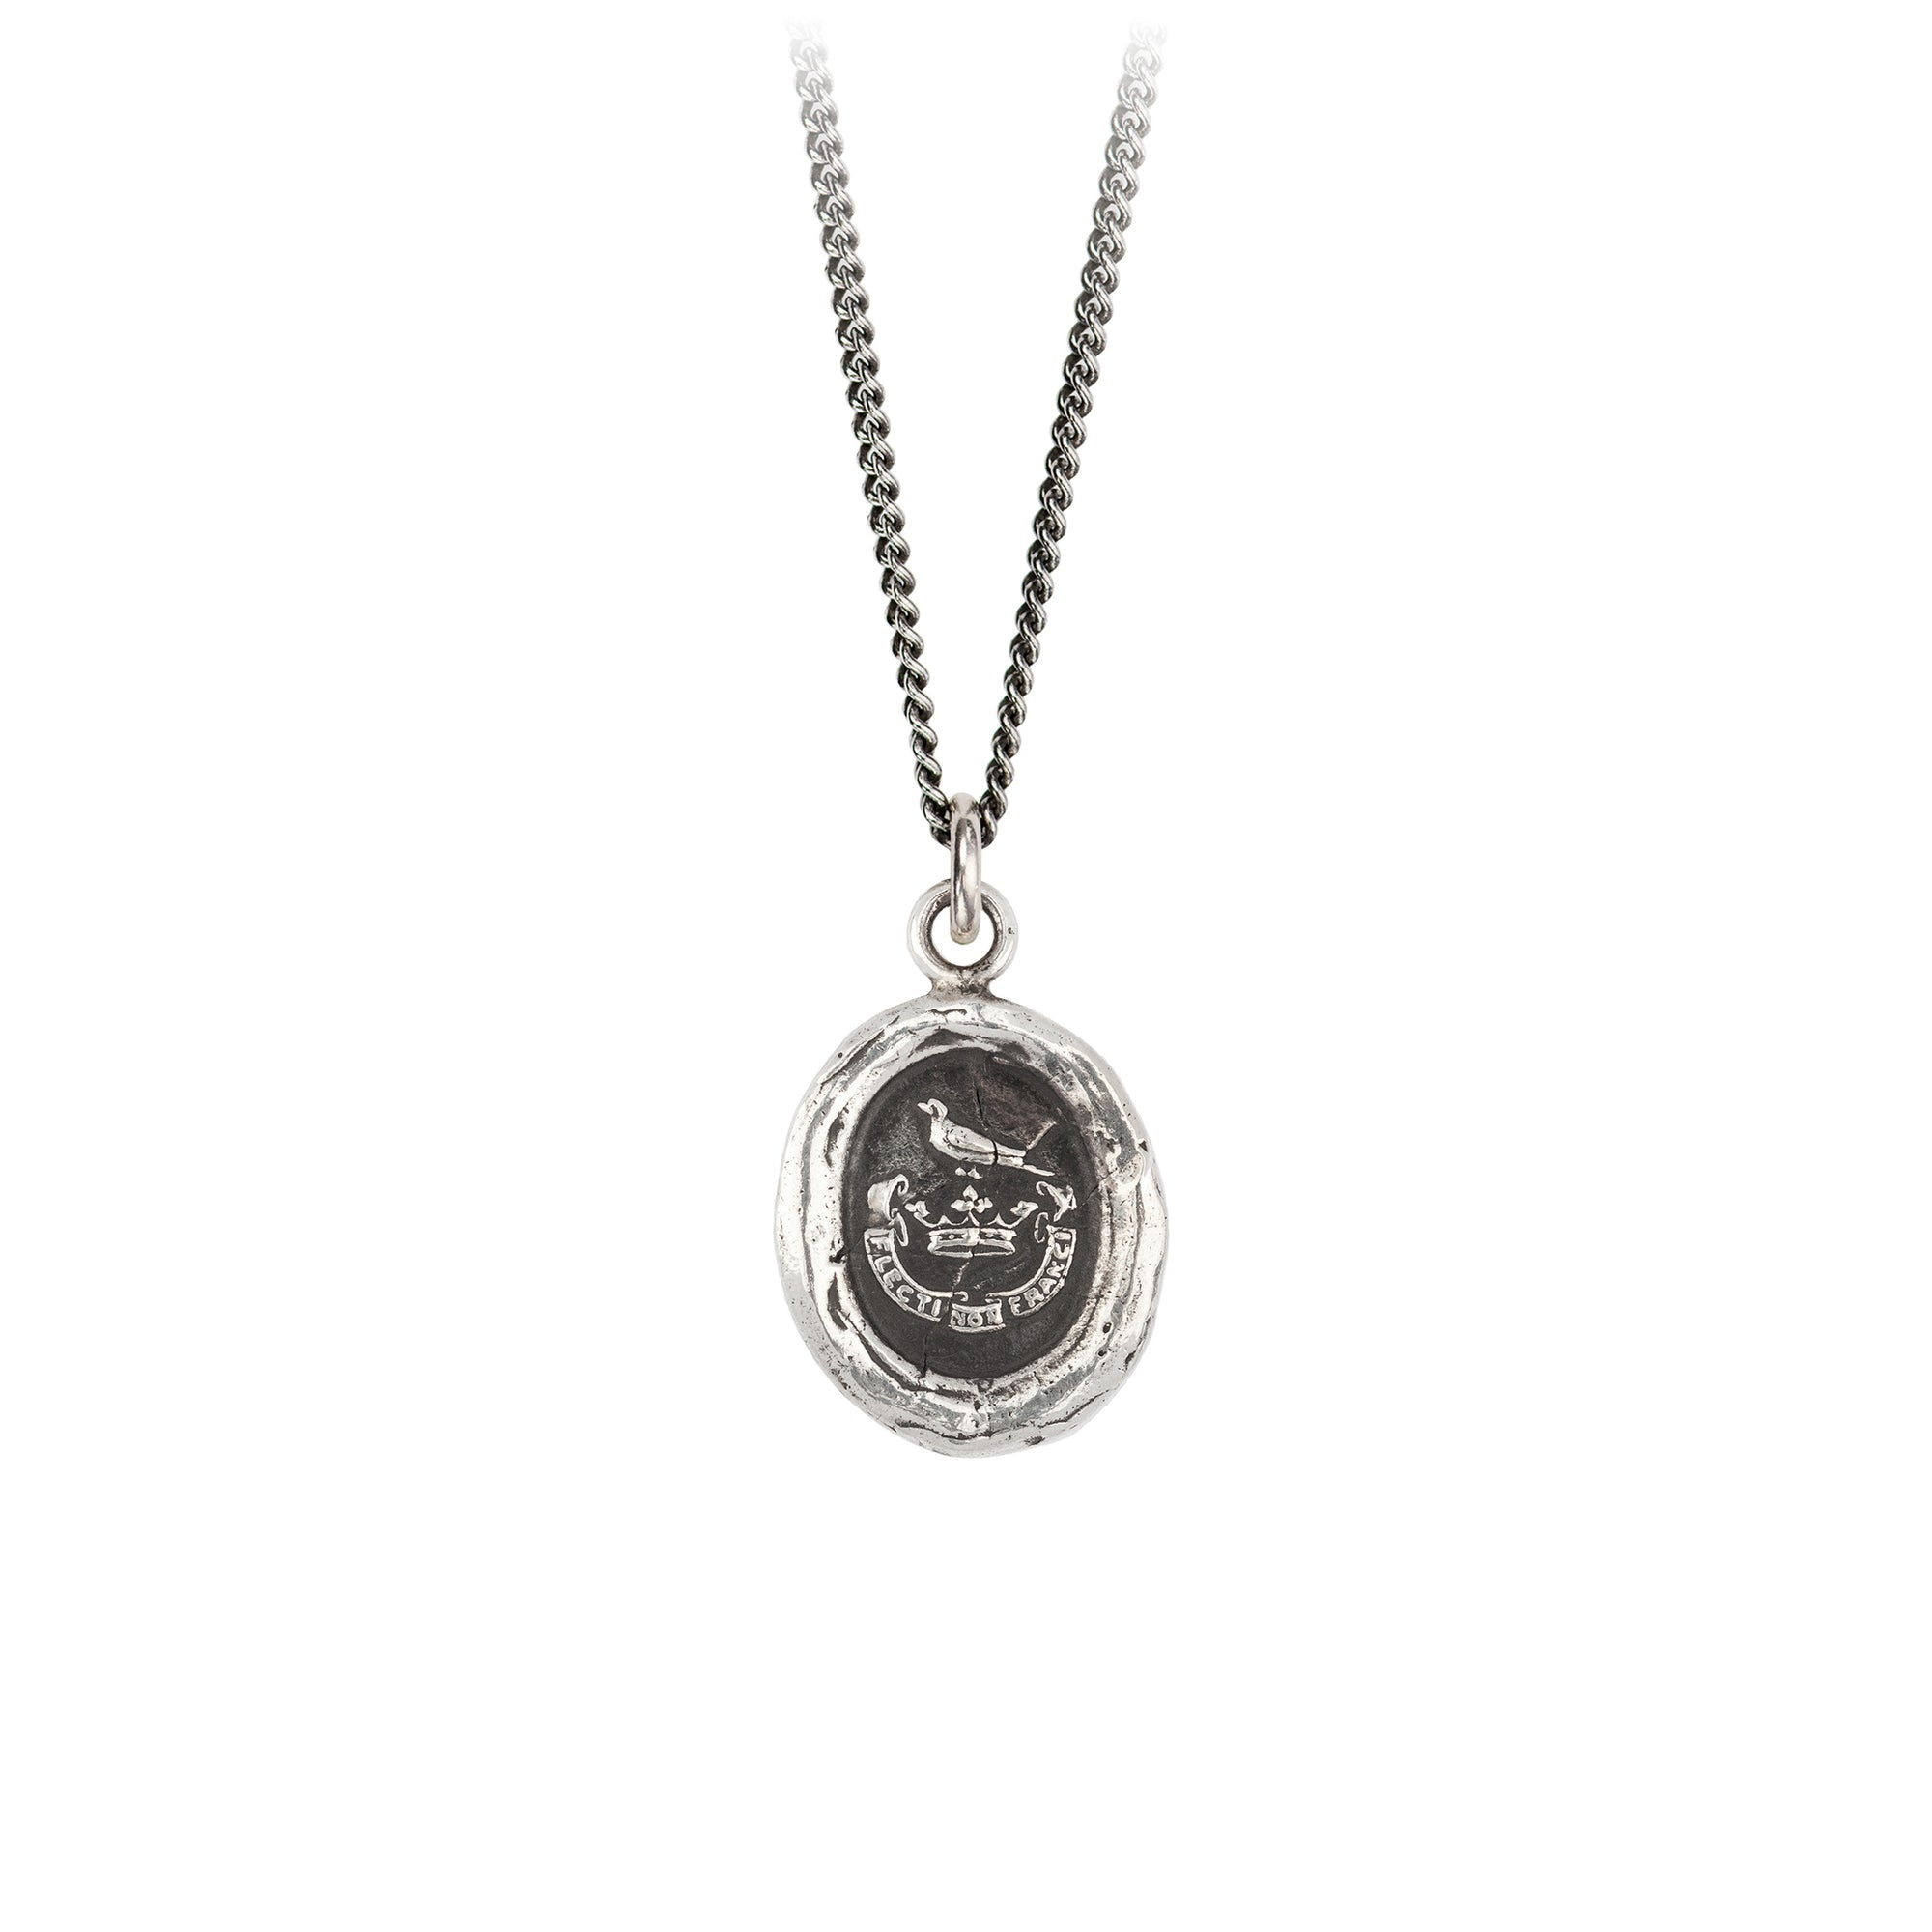 Pyrrha Unbreakable Talisman Necklace Fine Curb Chain Silver